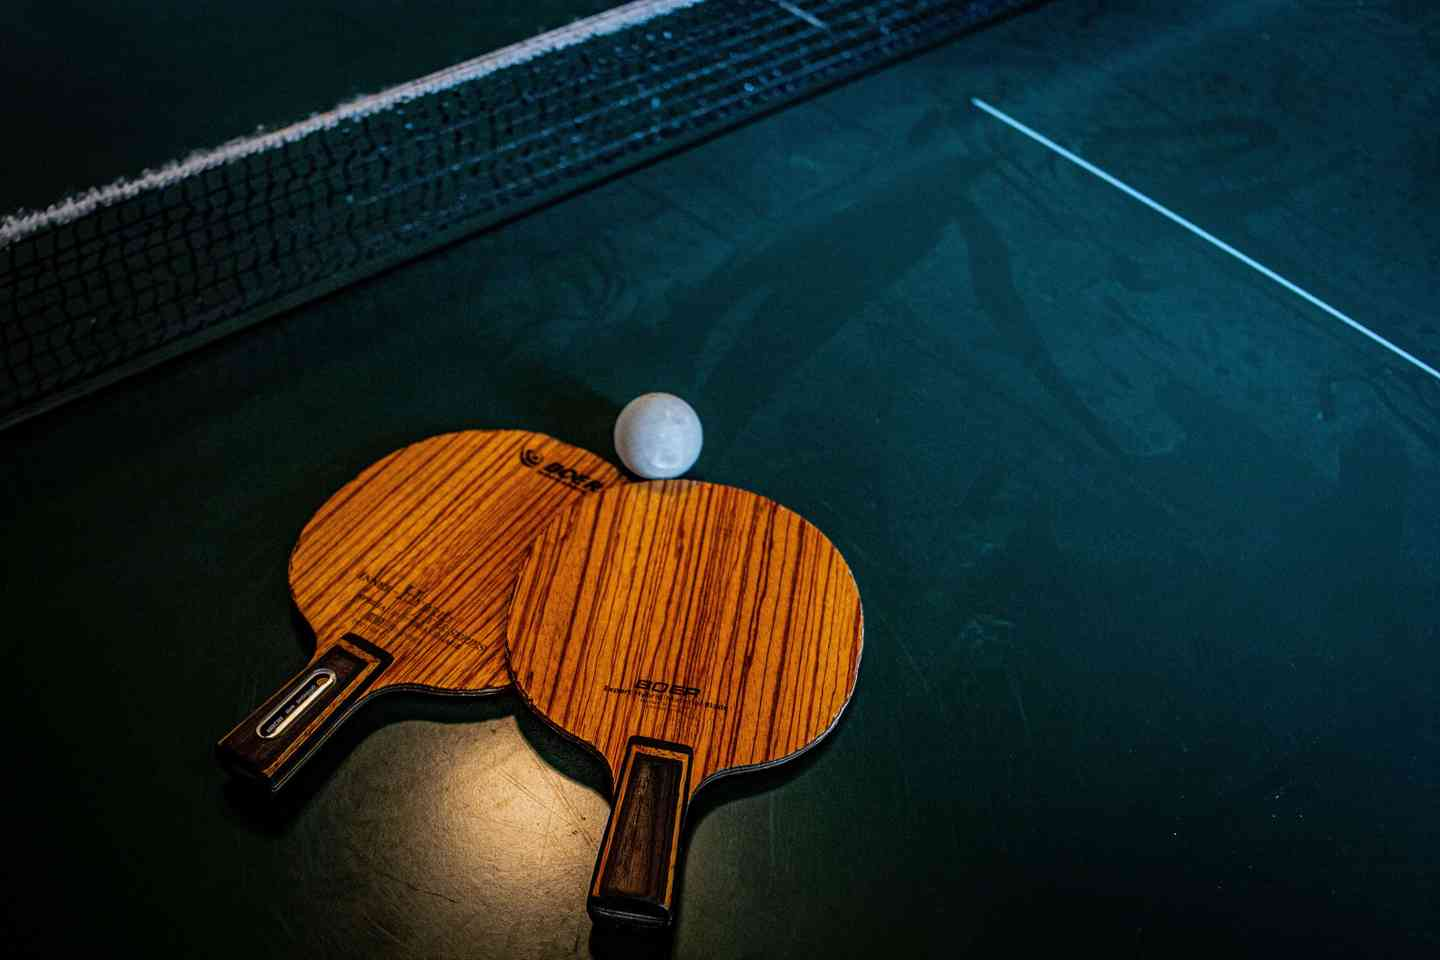 Wooden ping pong paddles with a ping pong ball